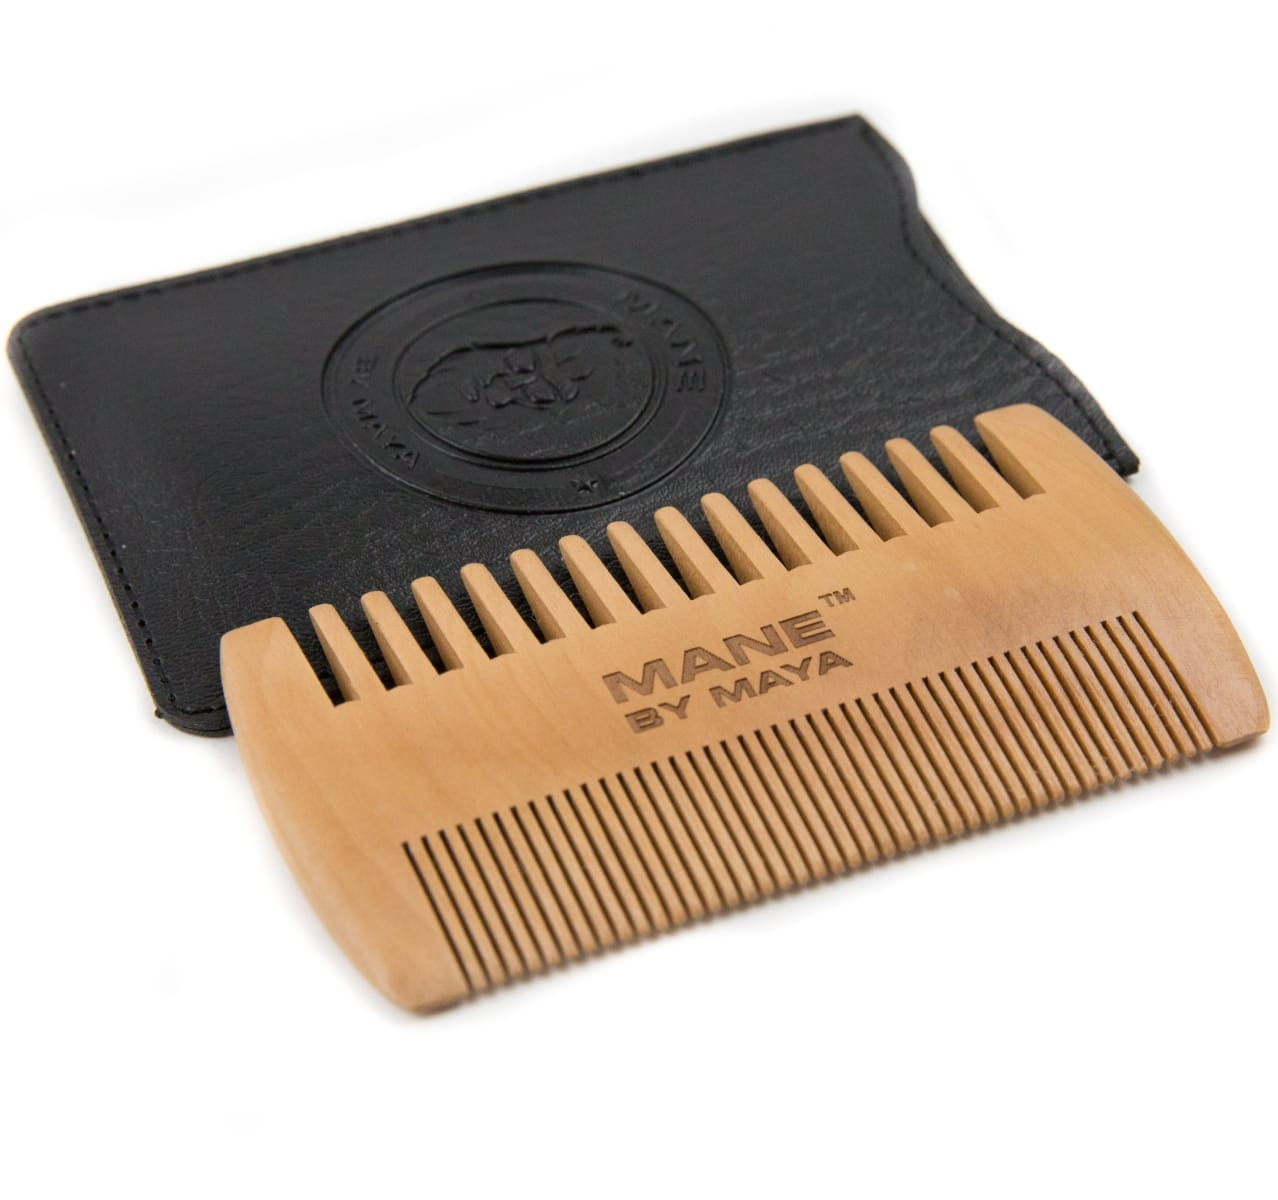 Mens Wooden Beard Comb - Mens Personal Care - Maya Cosmetics